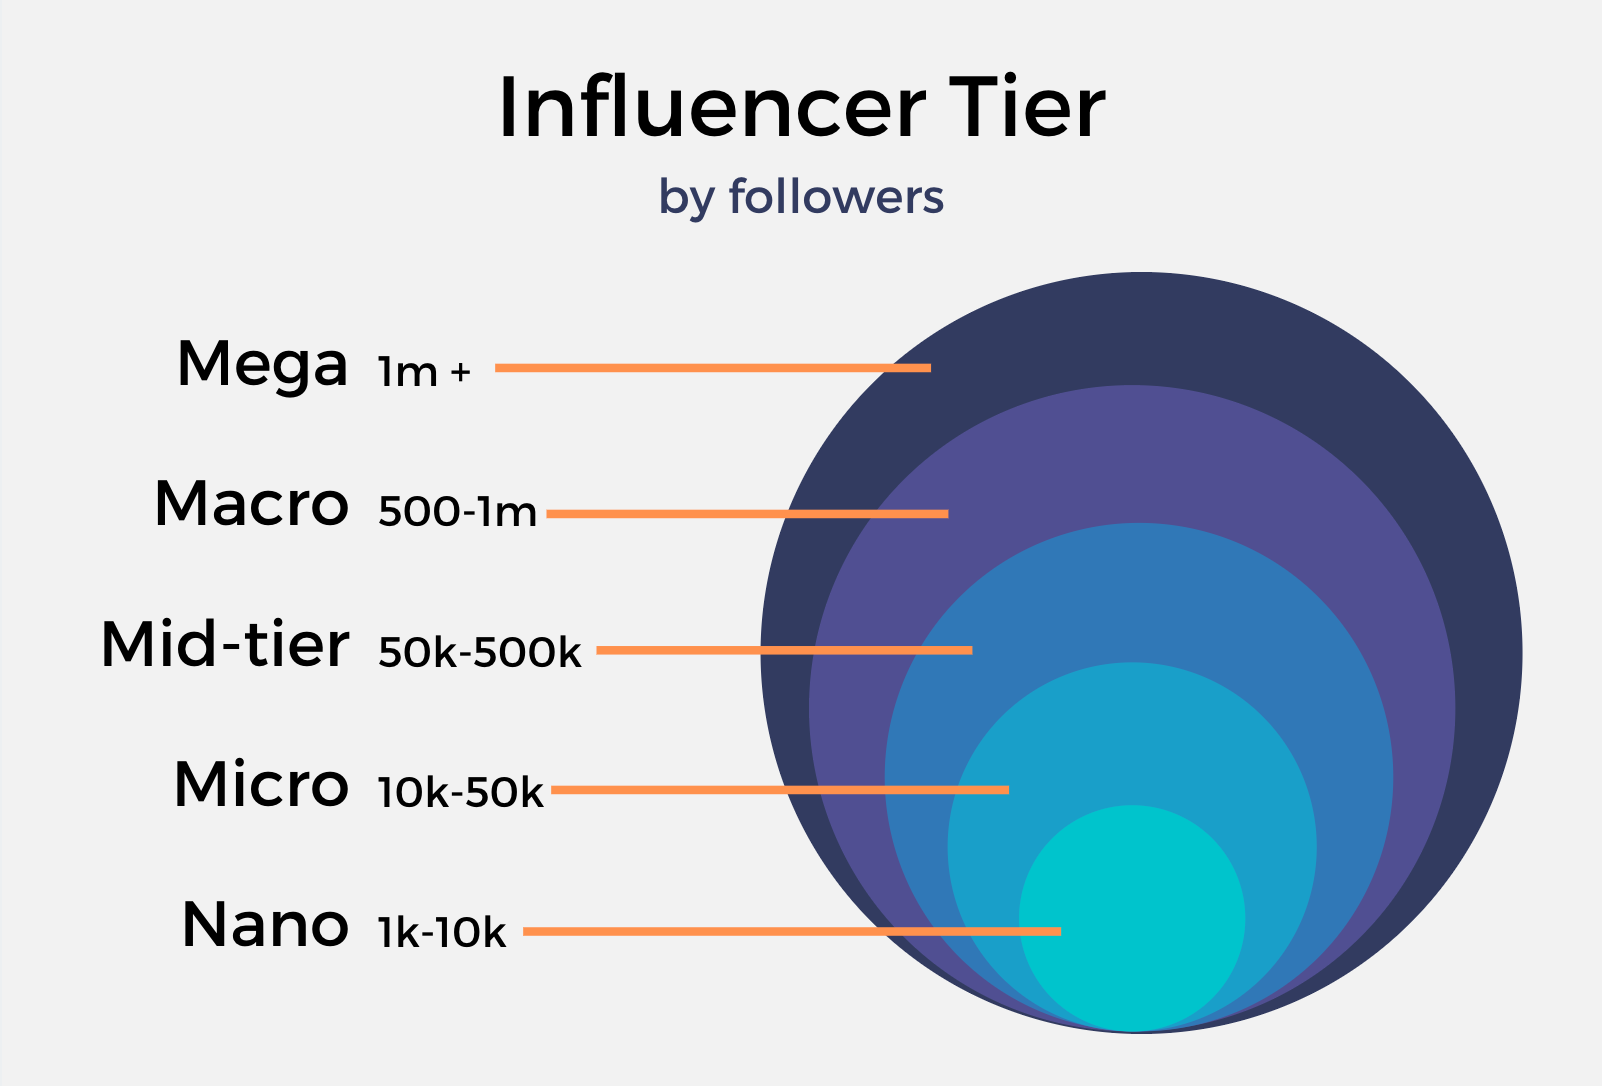 Influencer Tier by Followers